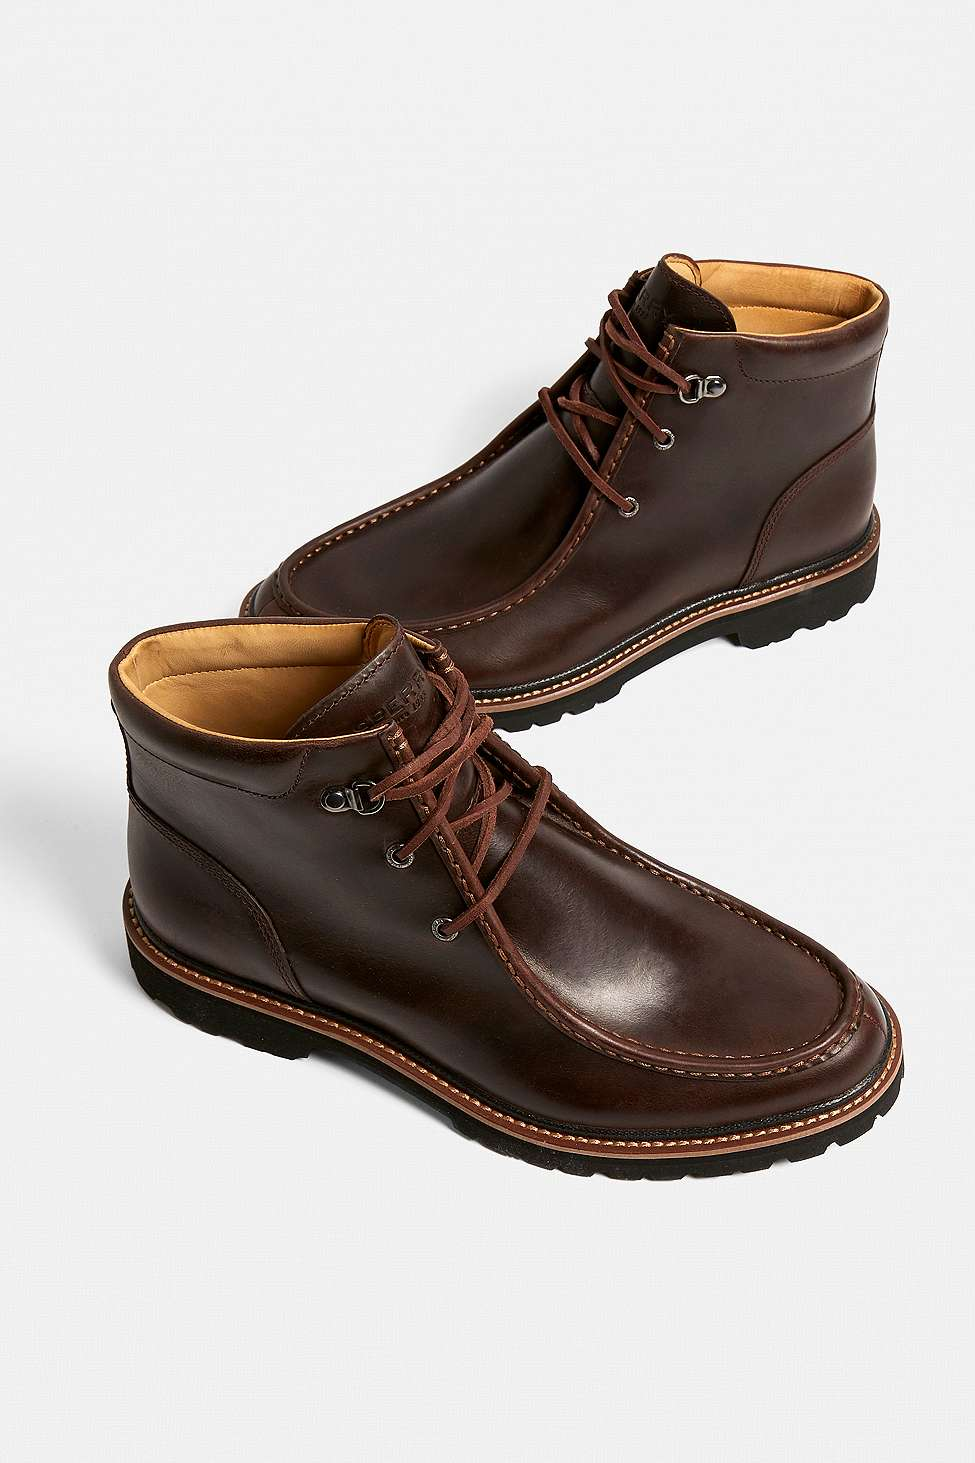 Sperry Authentic Original Mini Lug Brown Leather Chukka Boots